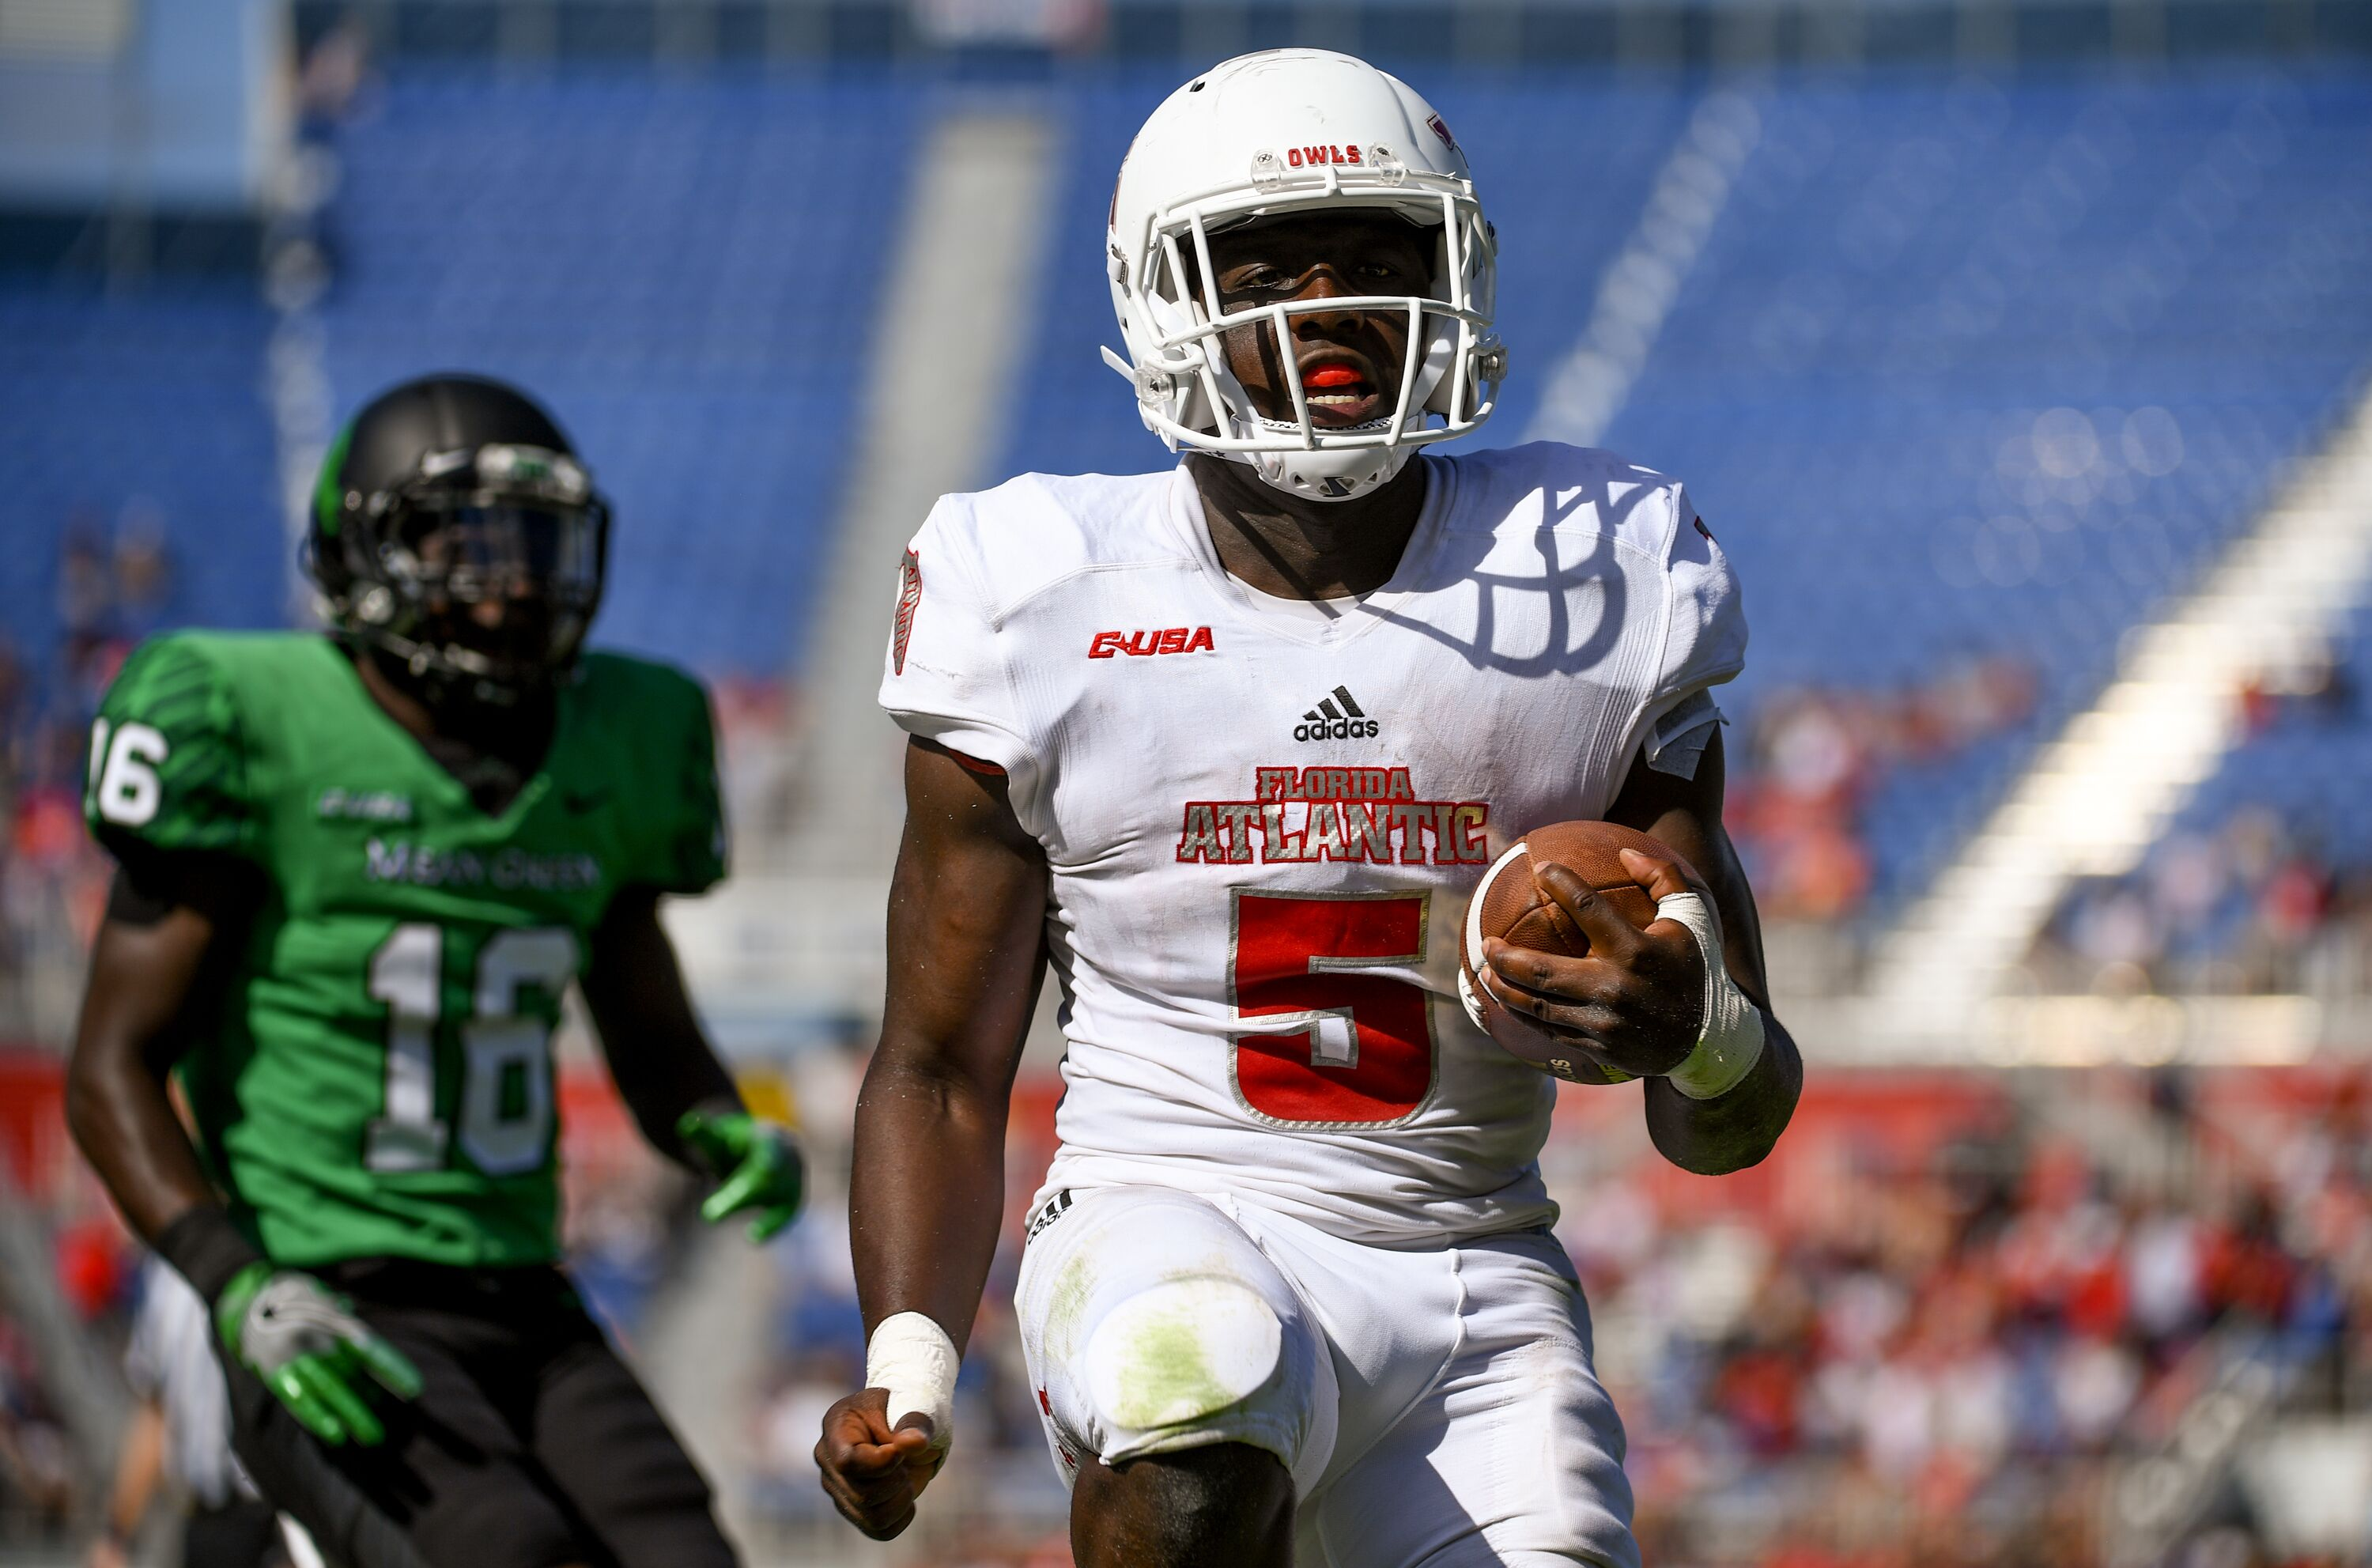 Boca Raton Bowl 2017 Officials Miss Obvious Targeting Call On Fau